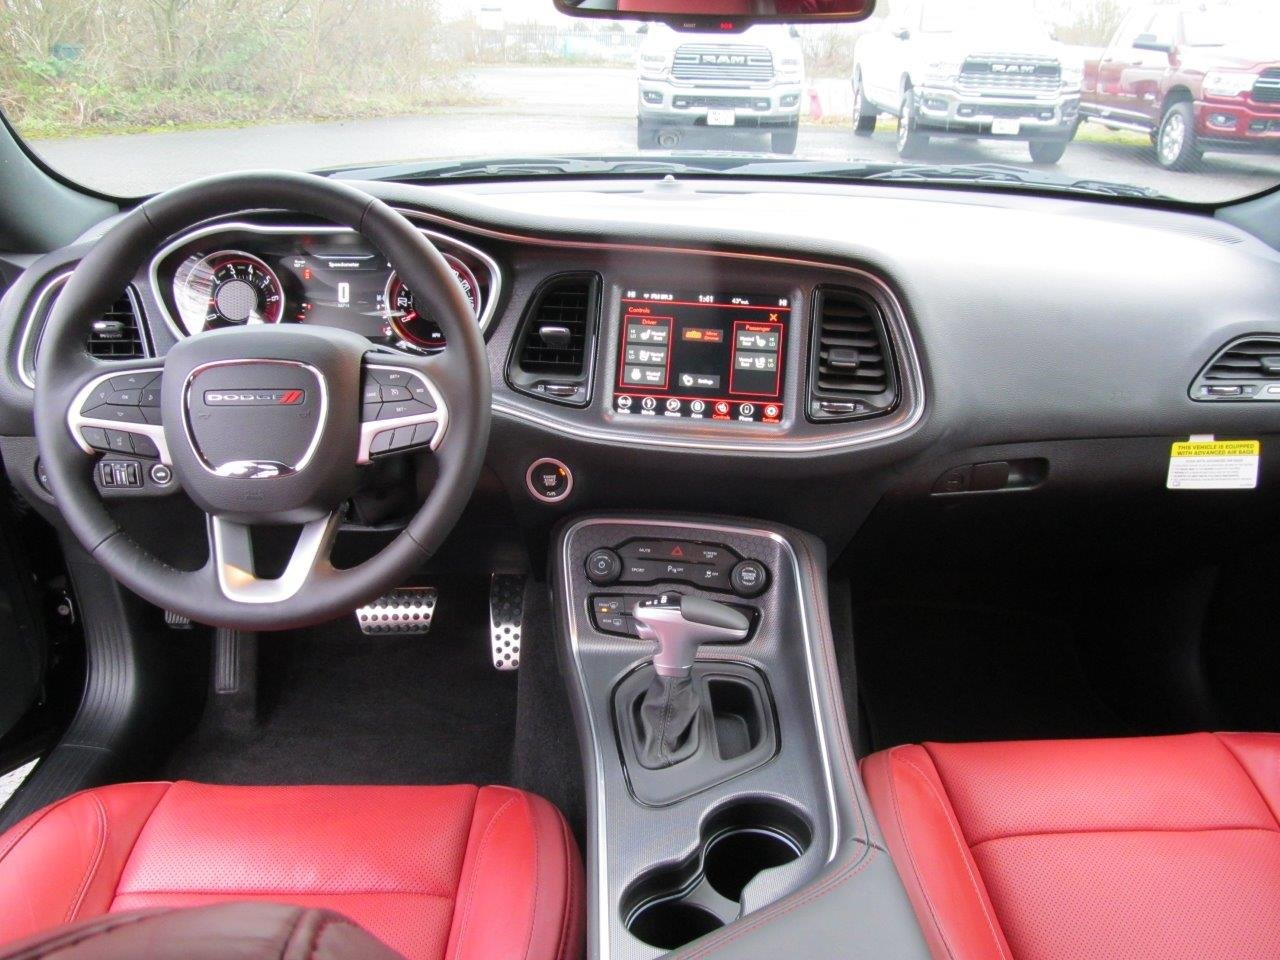 2020 Dodge Challenger SXT Plus RWD 8-Speed Automatic LHD For Sale (picture 7 of 12)